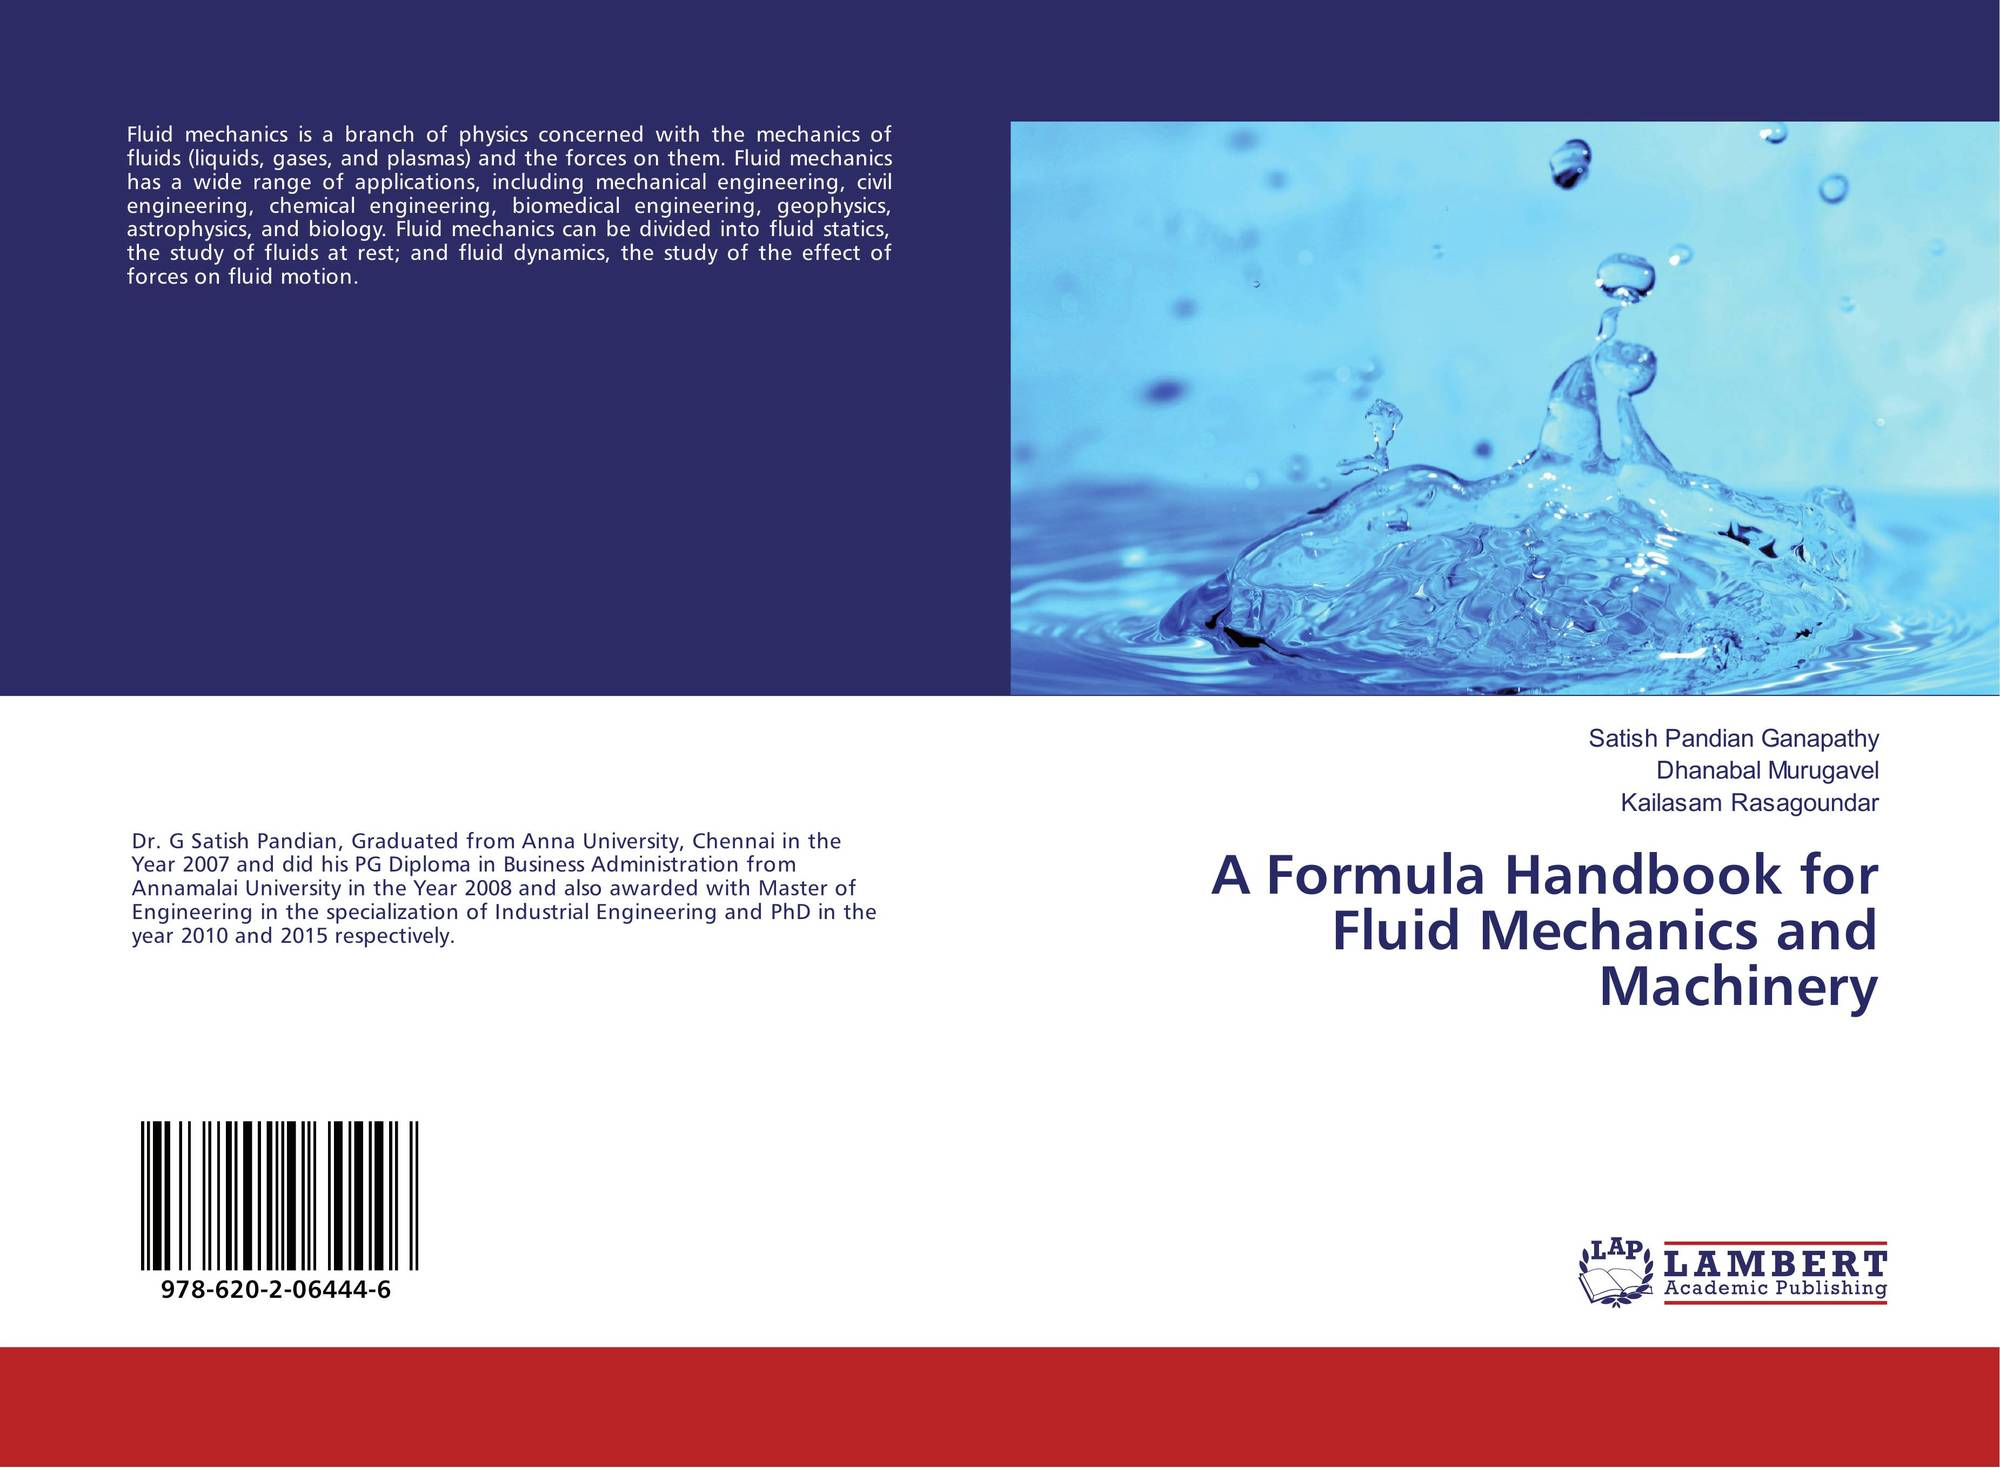 A Formula Handbook for Fluid Mechanics and Machinery, 978-620-2